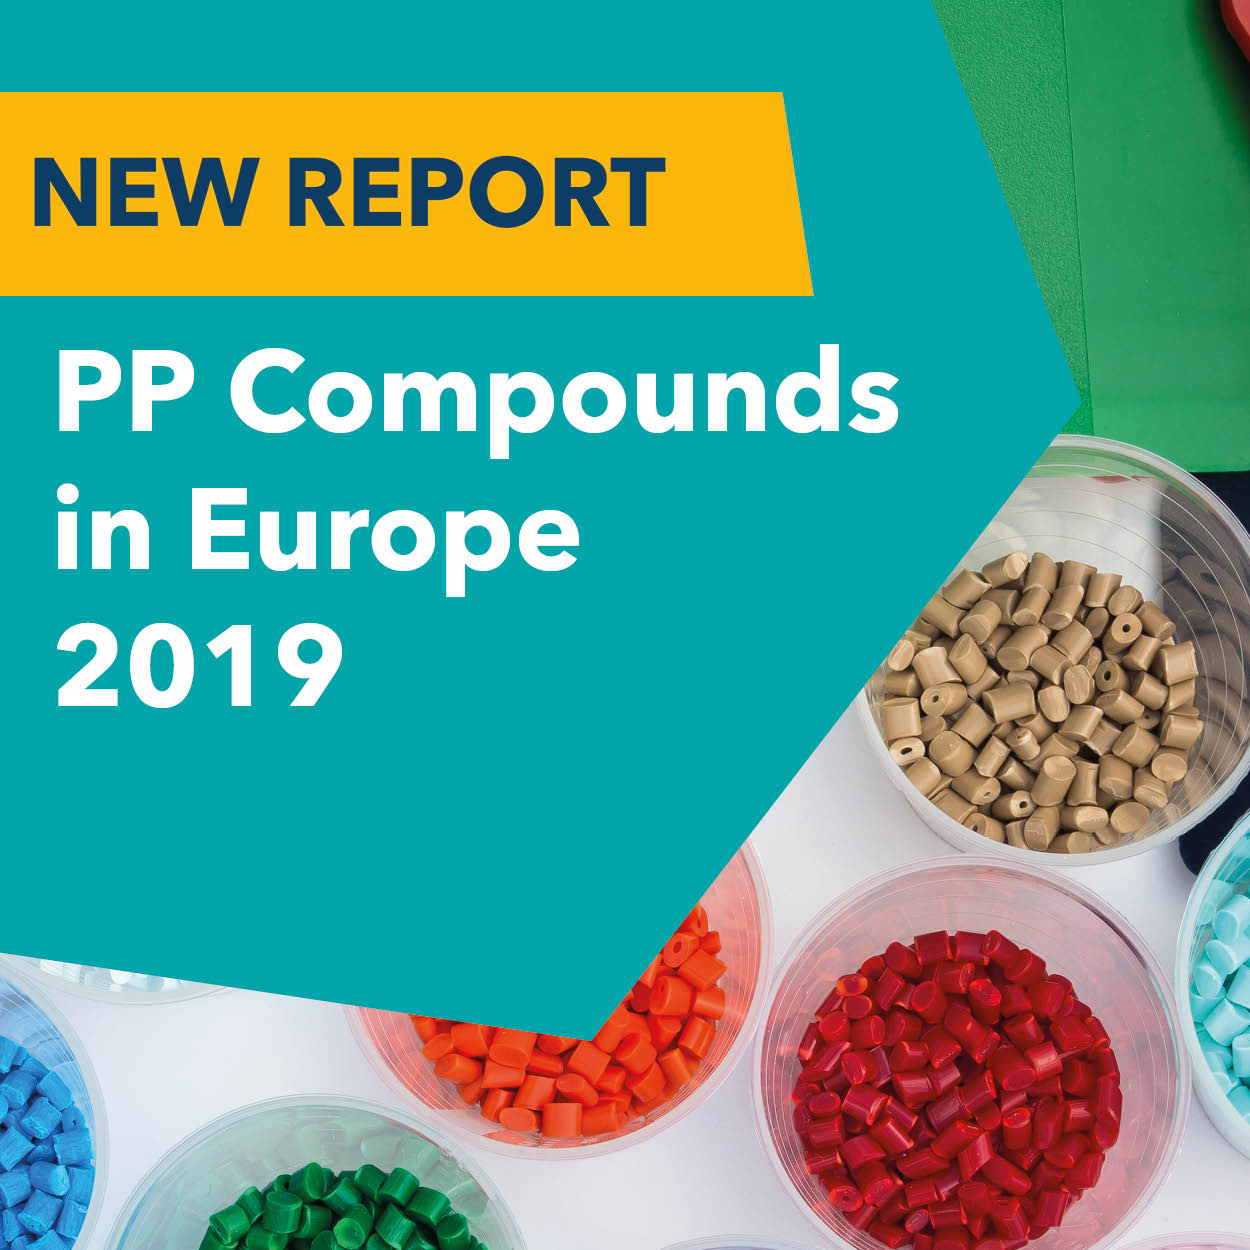 Get the latest market intelligence for PP compounds in Europe